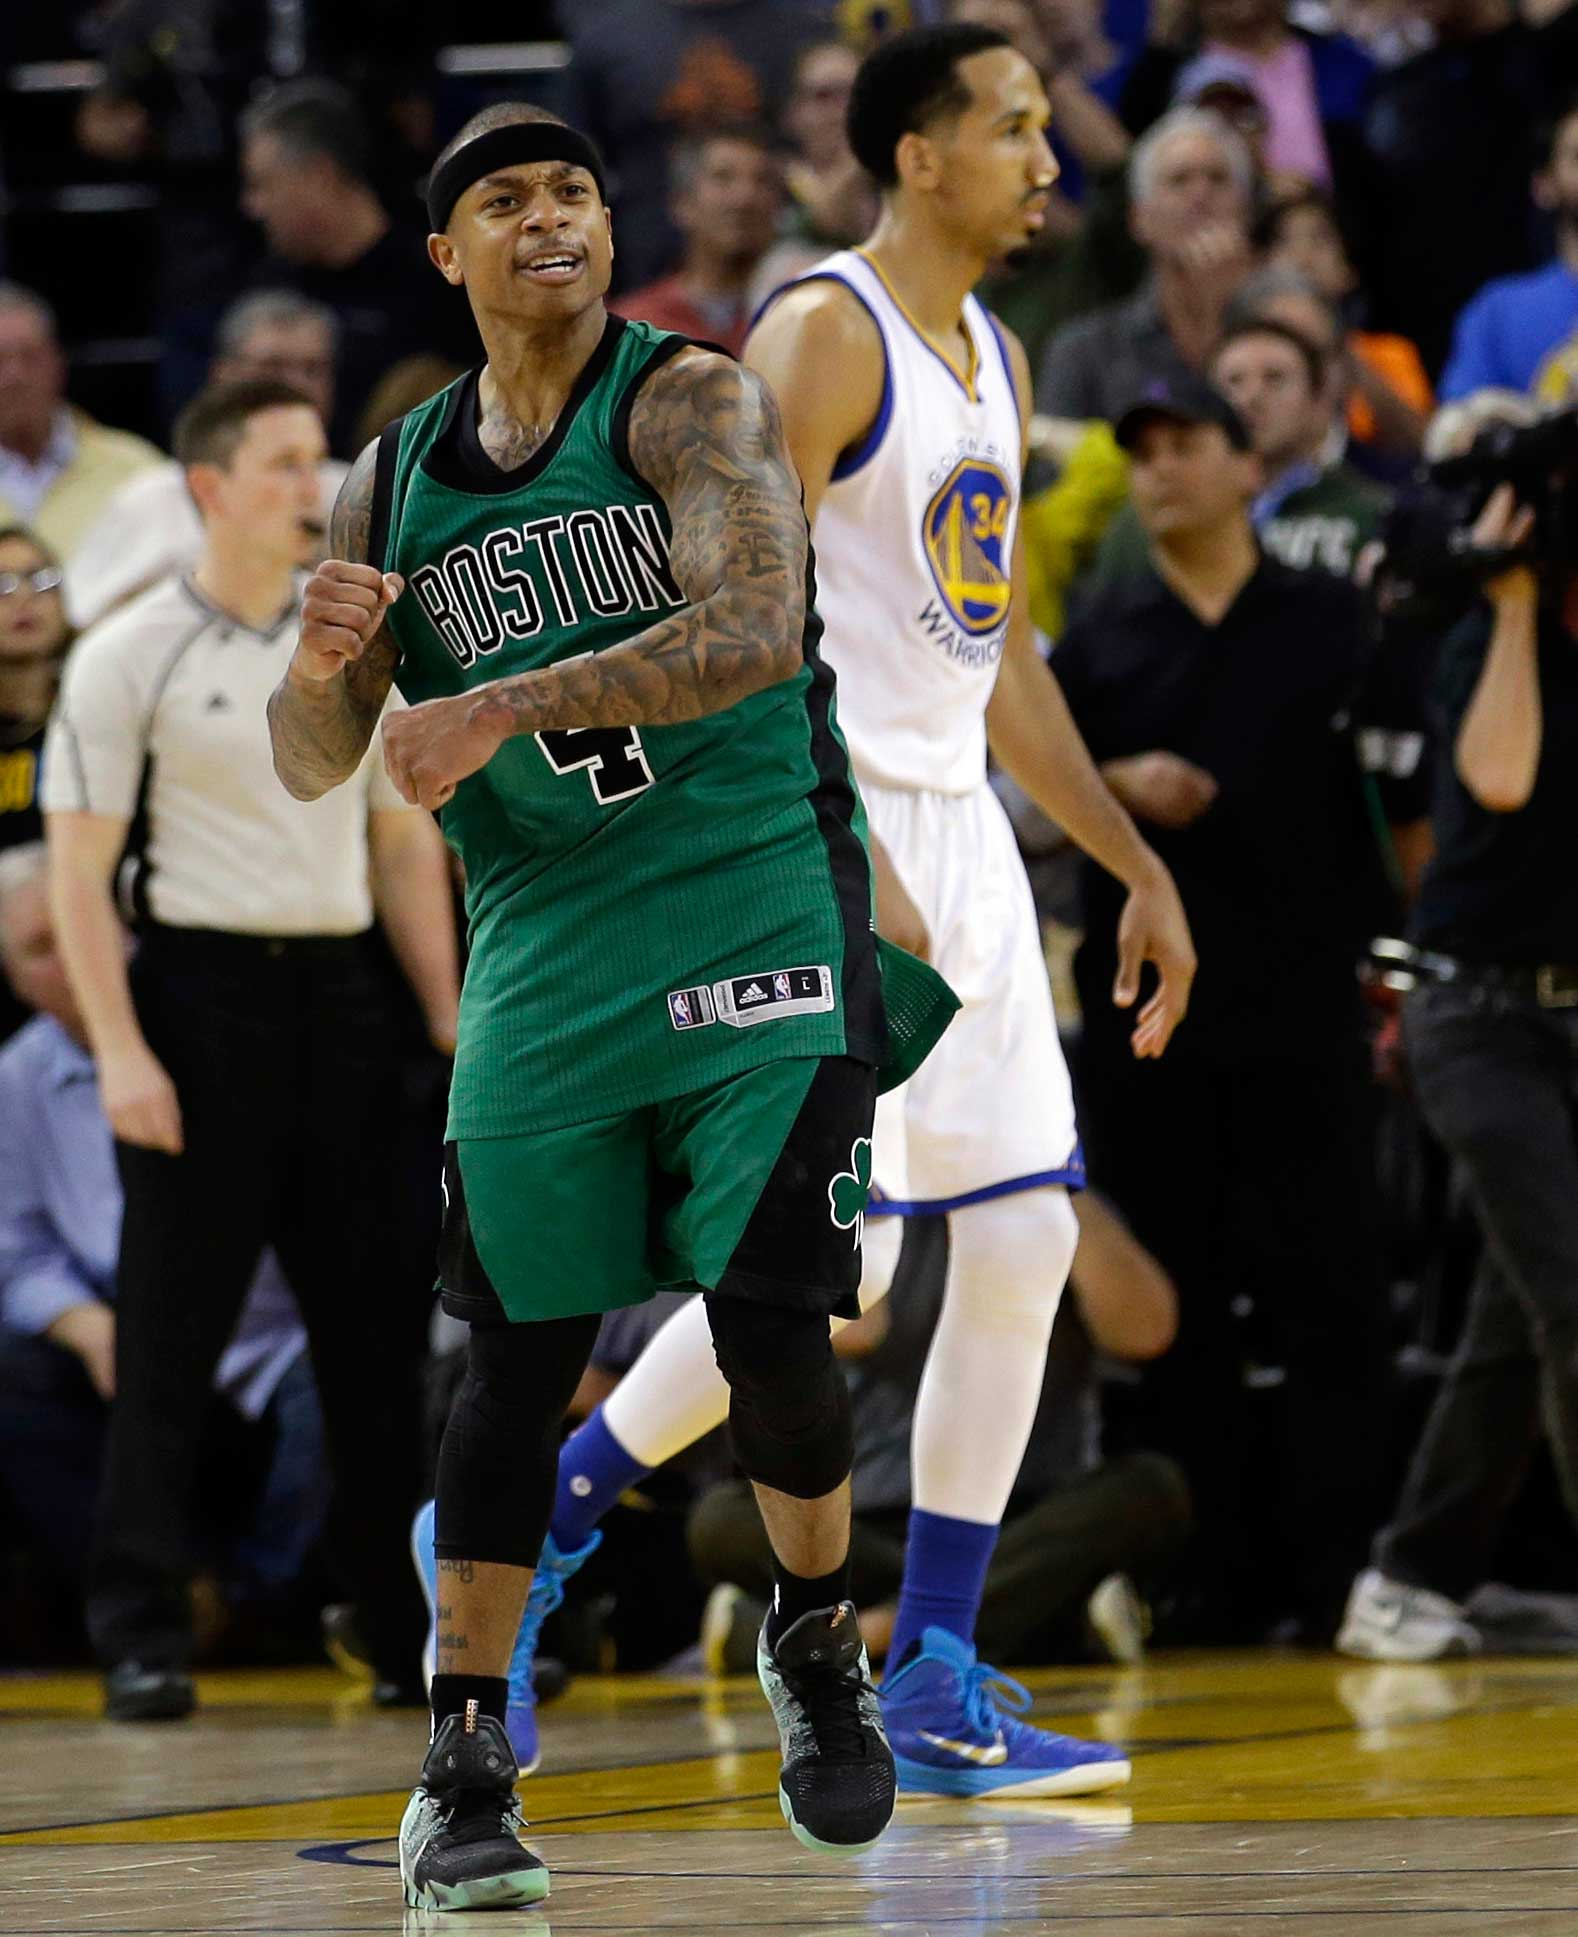 Isaiah Thomas of Boston celebrates and Shaun Livingston of Golden State walks off the court at the end of the Celtics' 109-106 win over the Warriors. Their previous game went to double overtime.